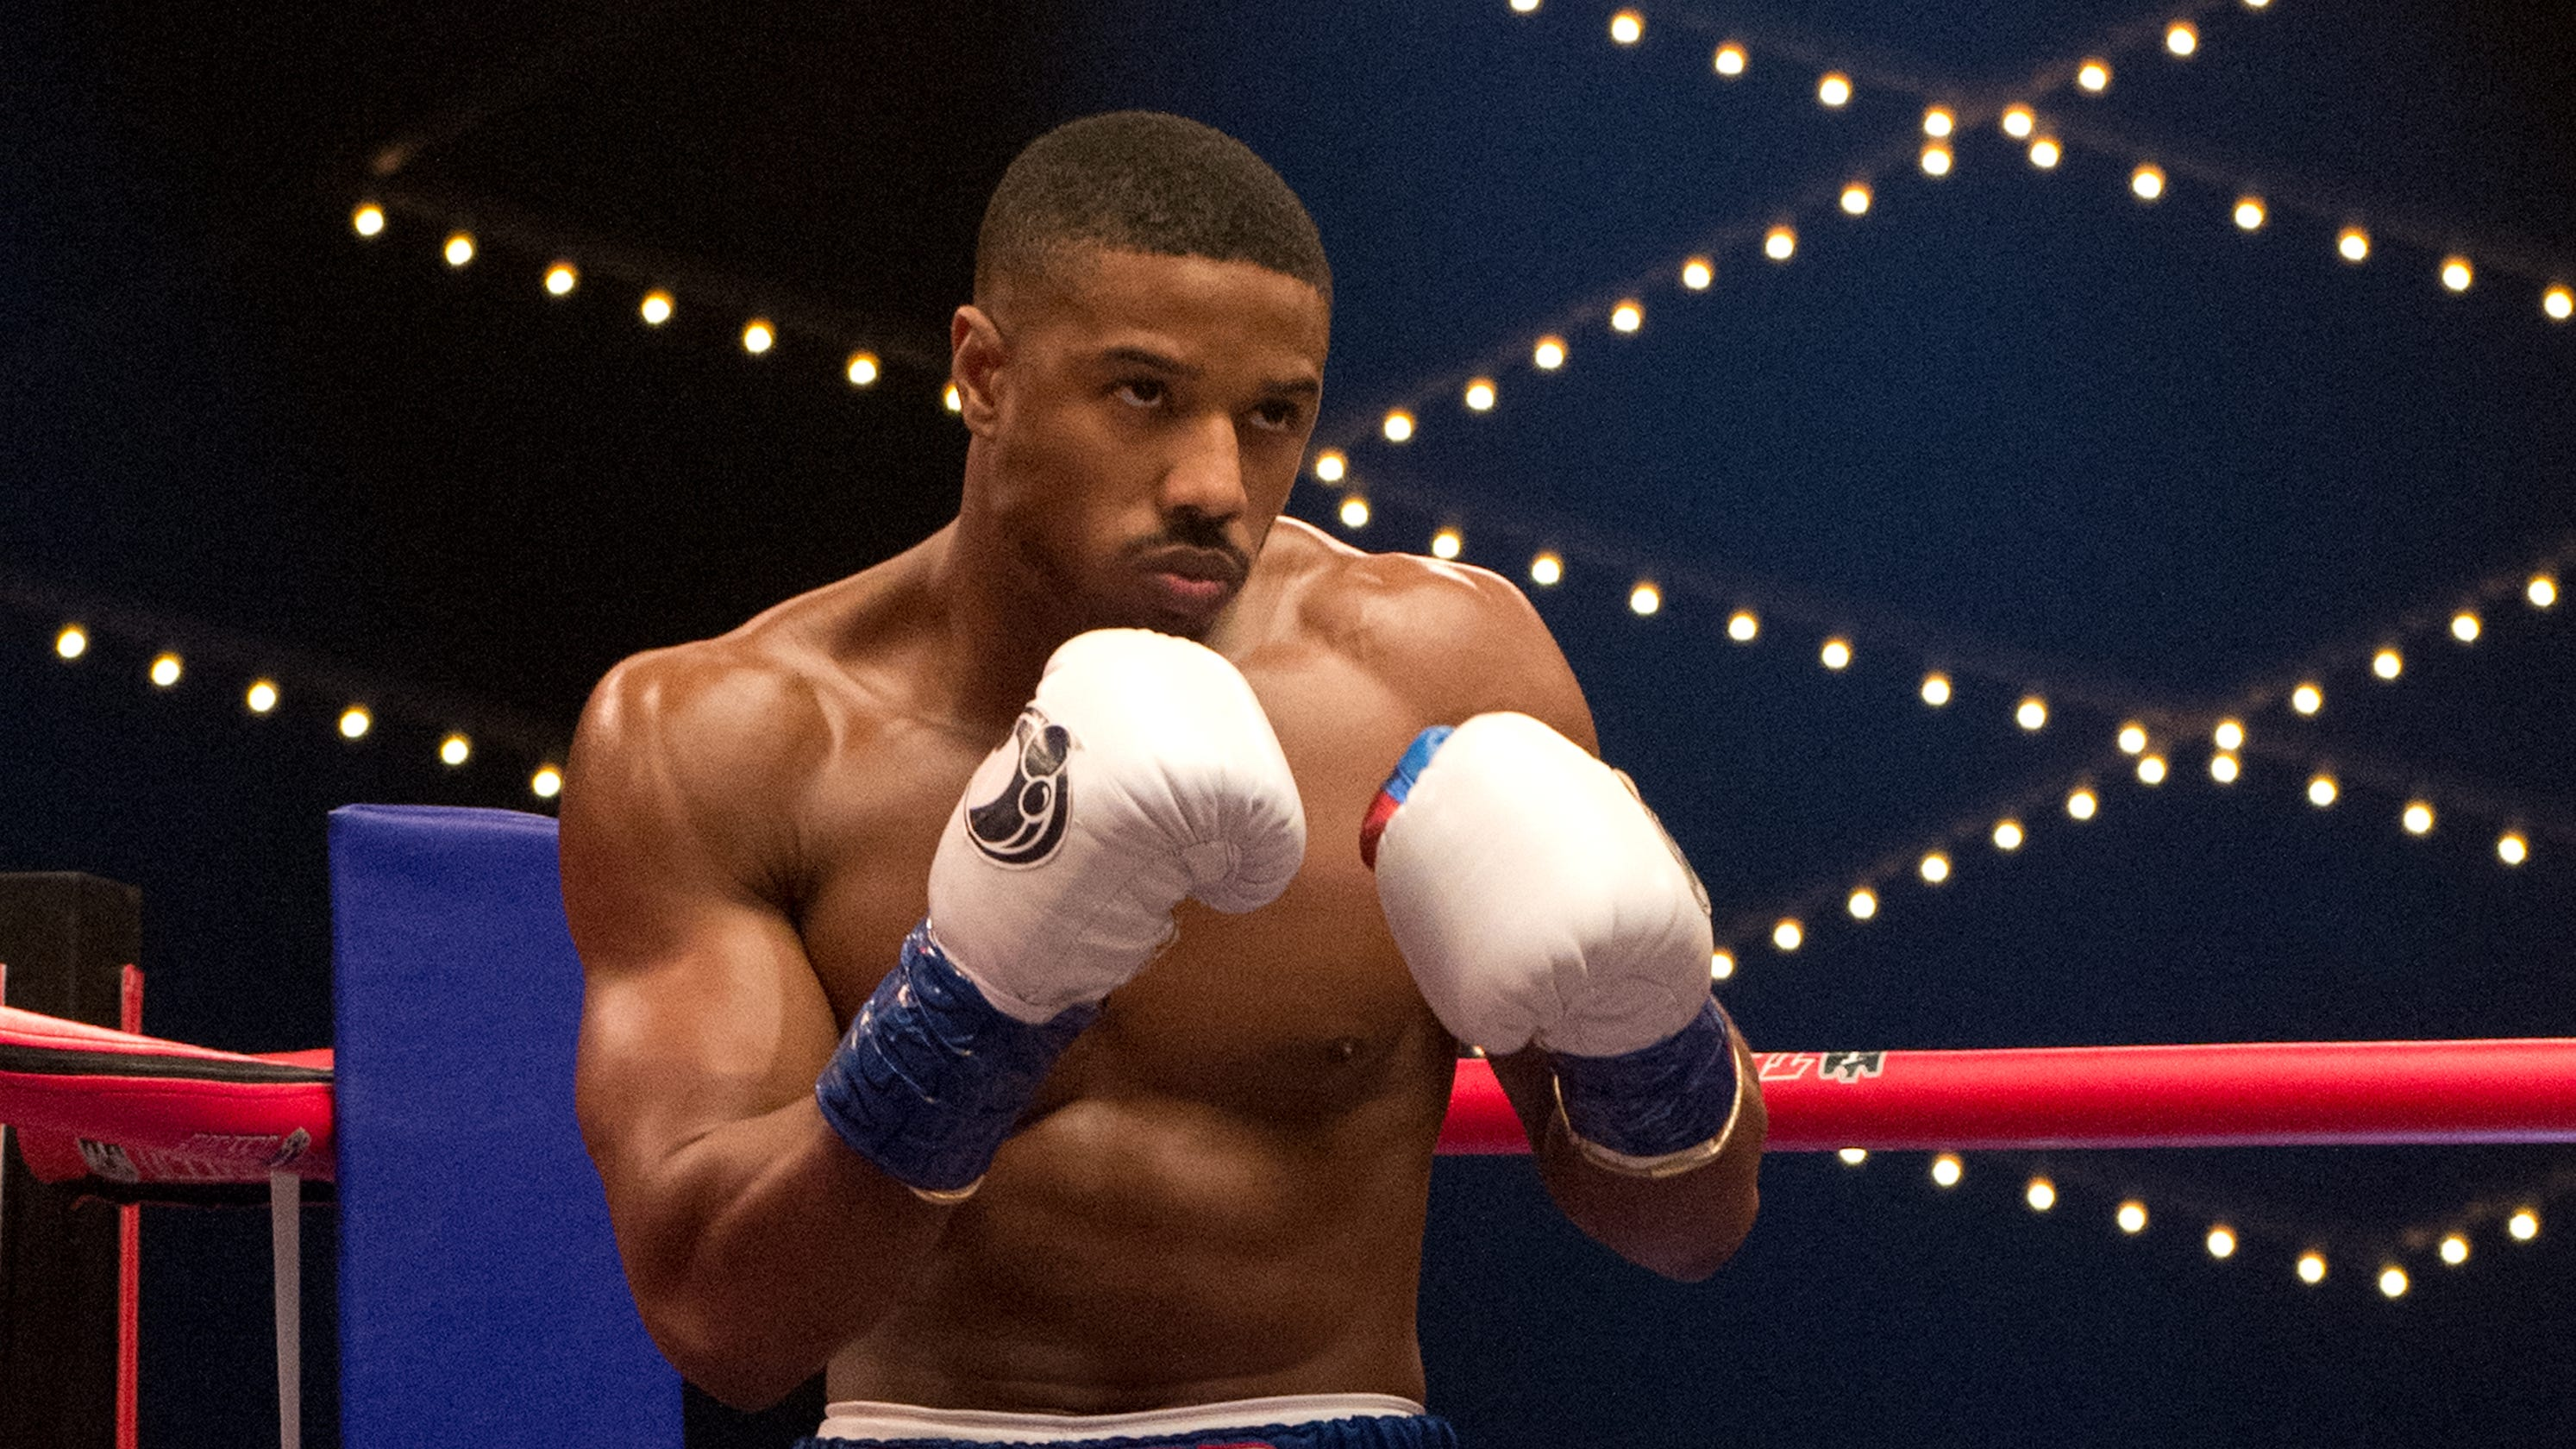 Creed 2, Mary Poppins Returns at the movies this season